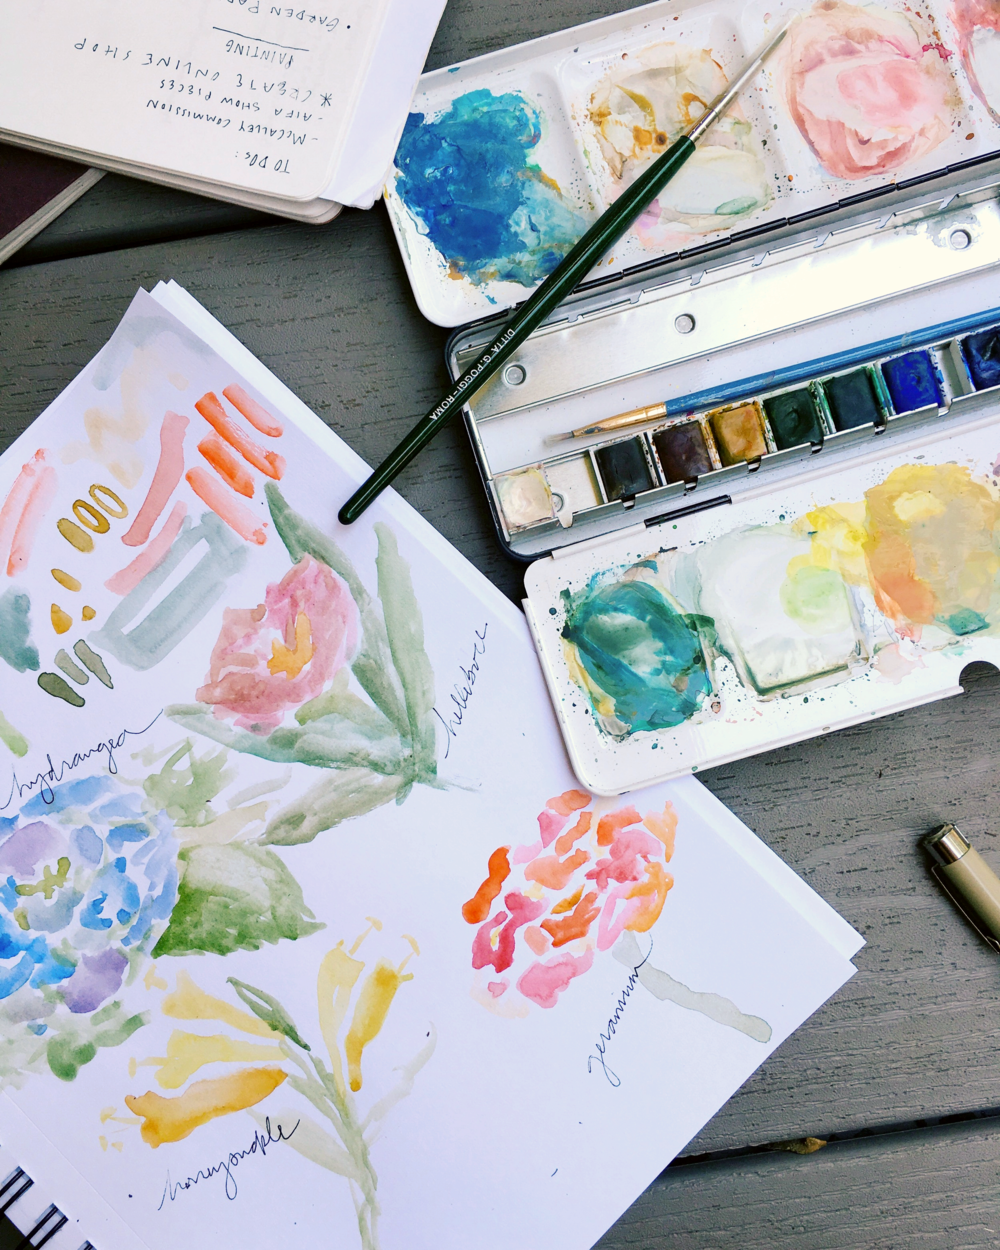 Preliminary watercolor sketches of *los flores* in focus.